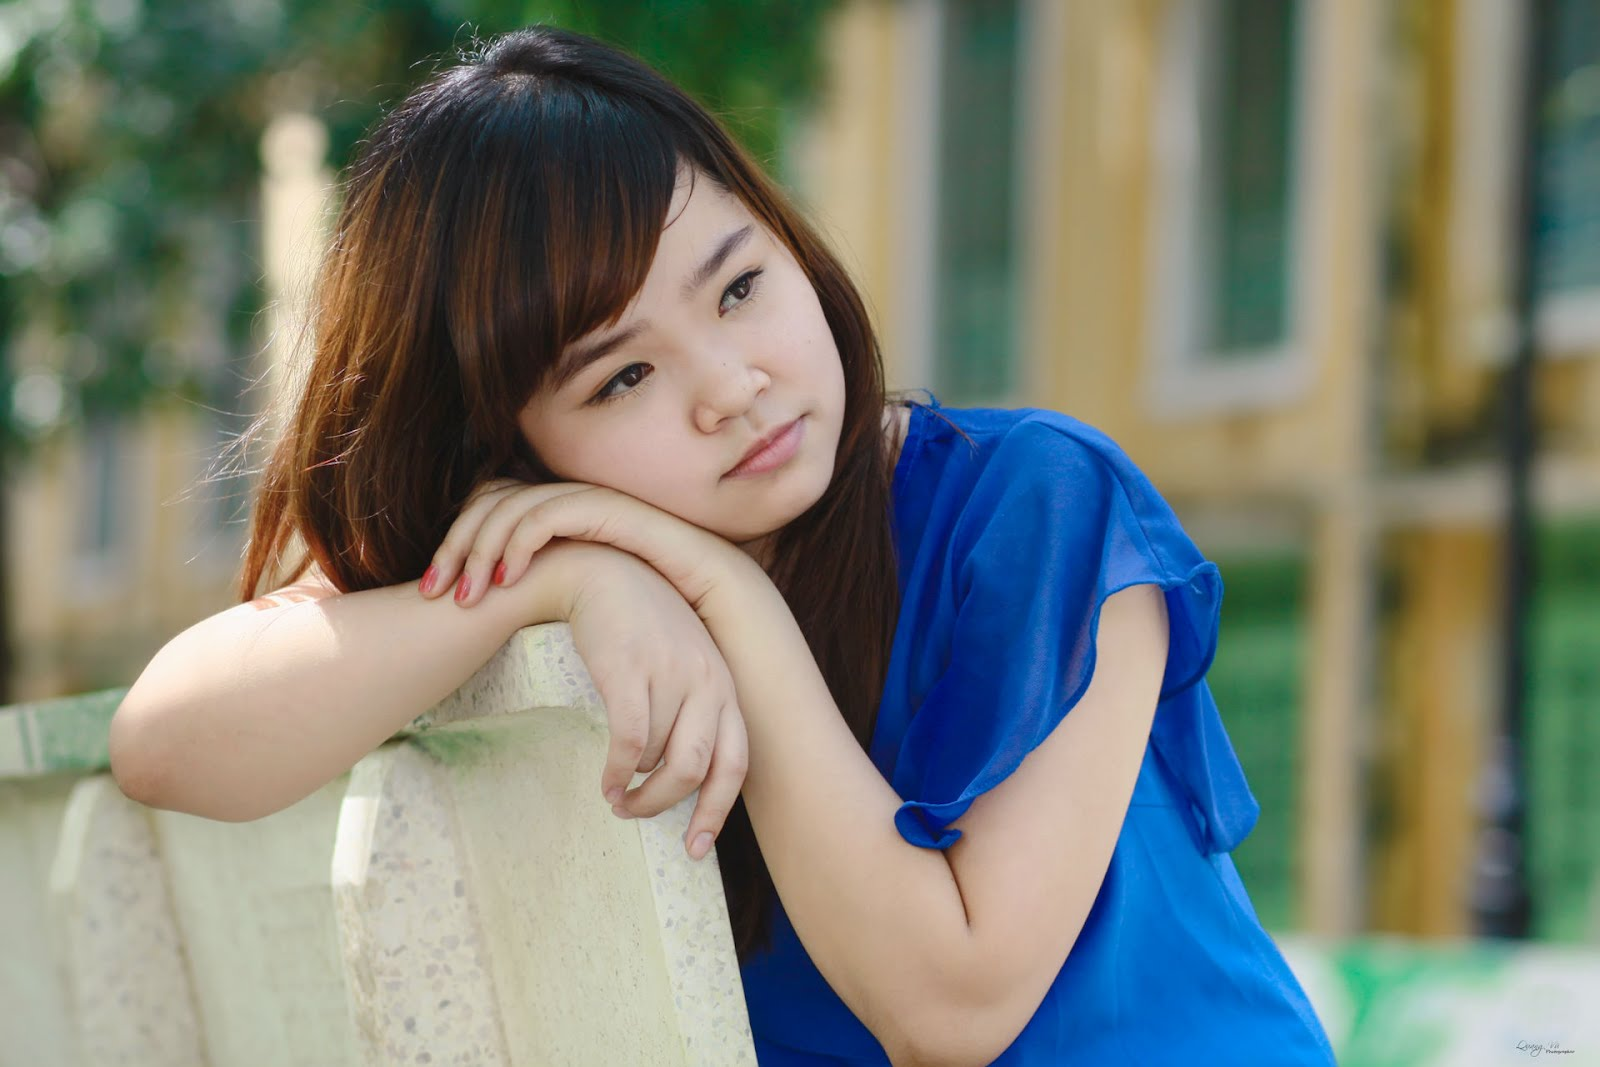 Sad Girls Wallpapers Hd Pictures One Hd Wallpaper Pictures 1600x1067